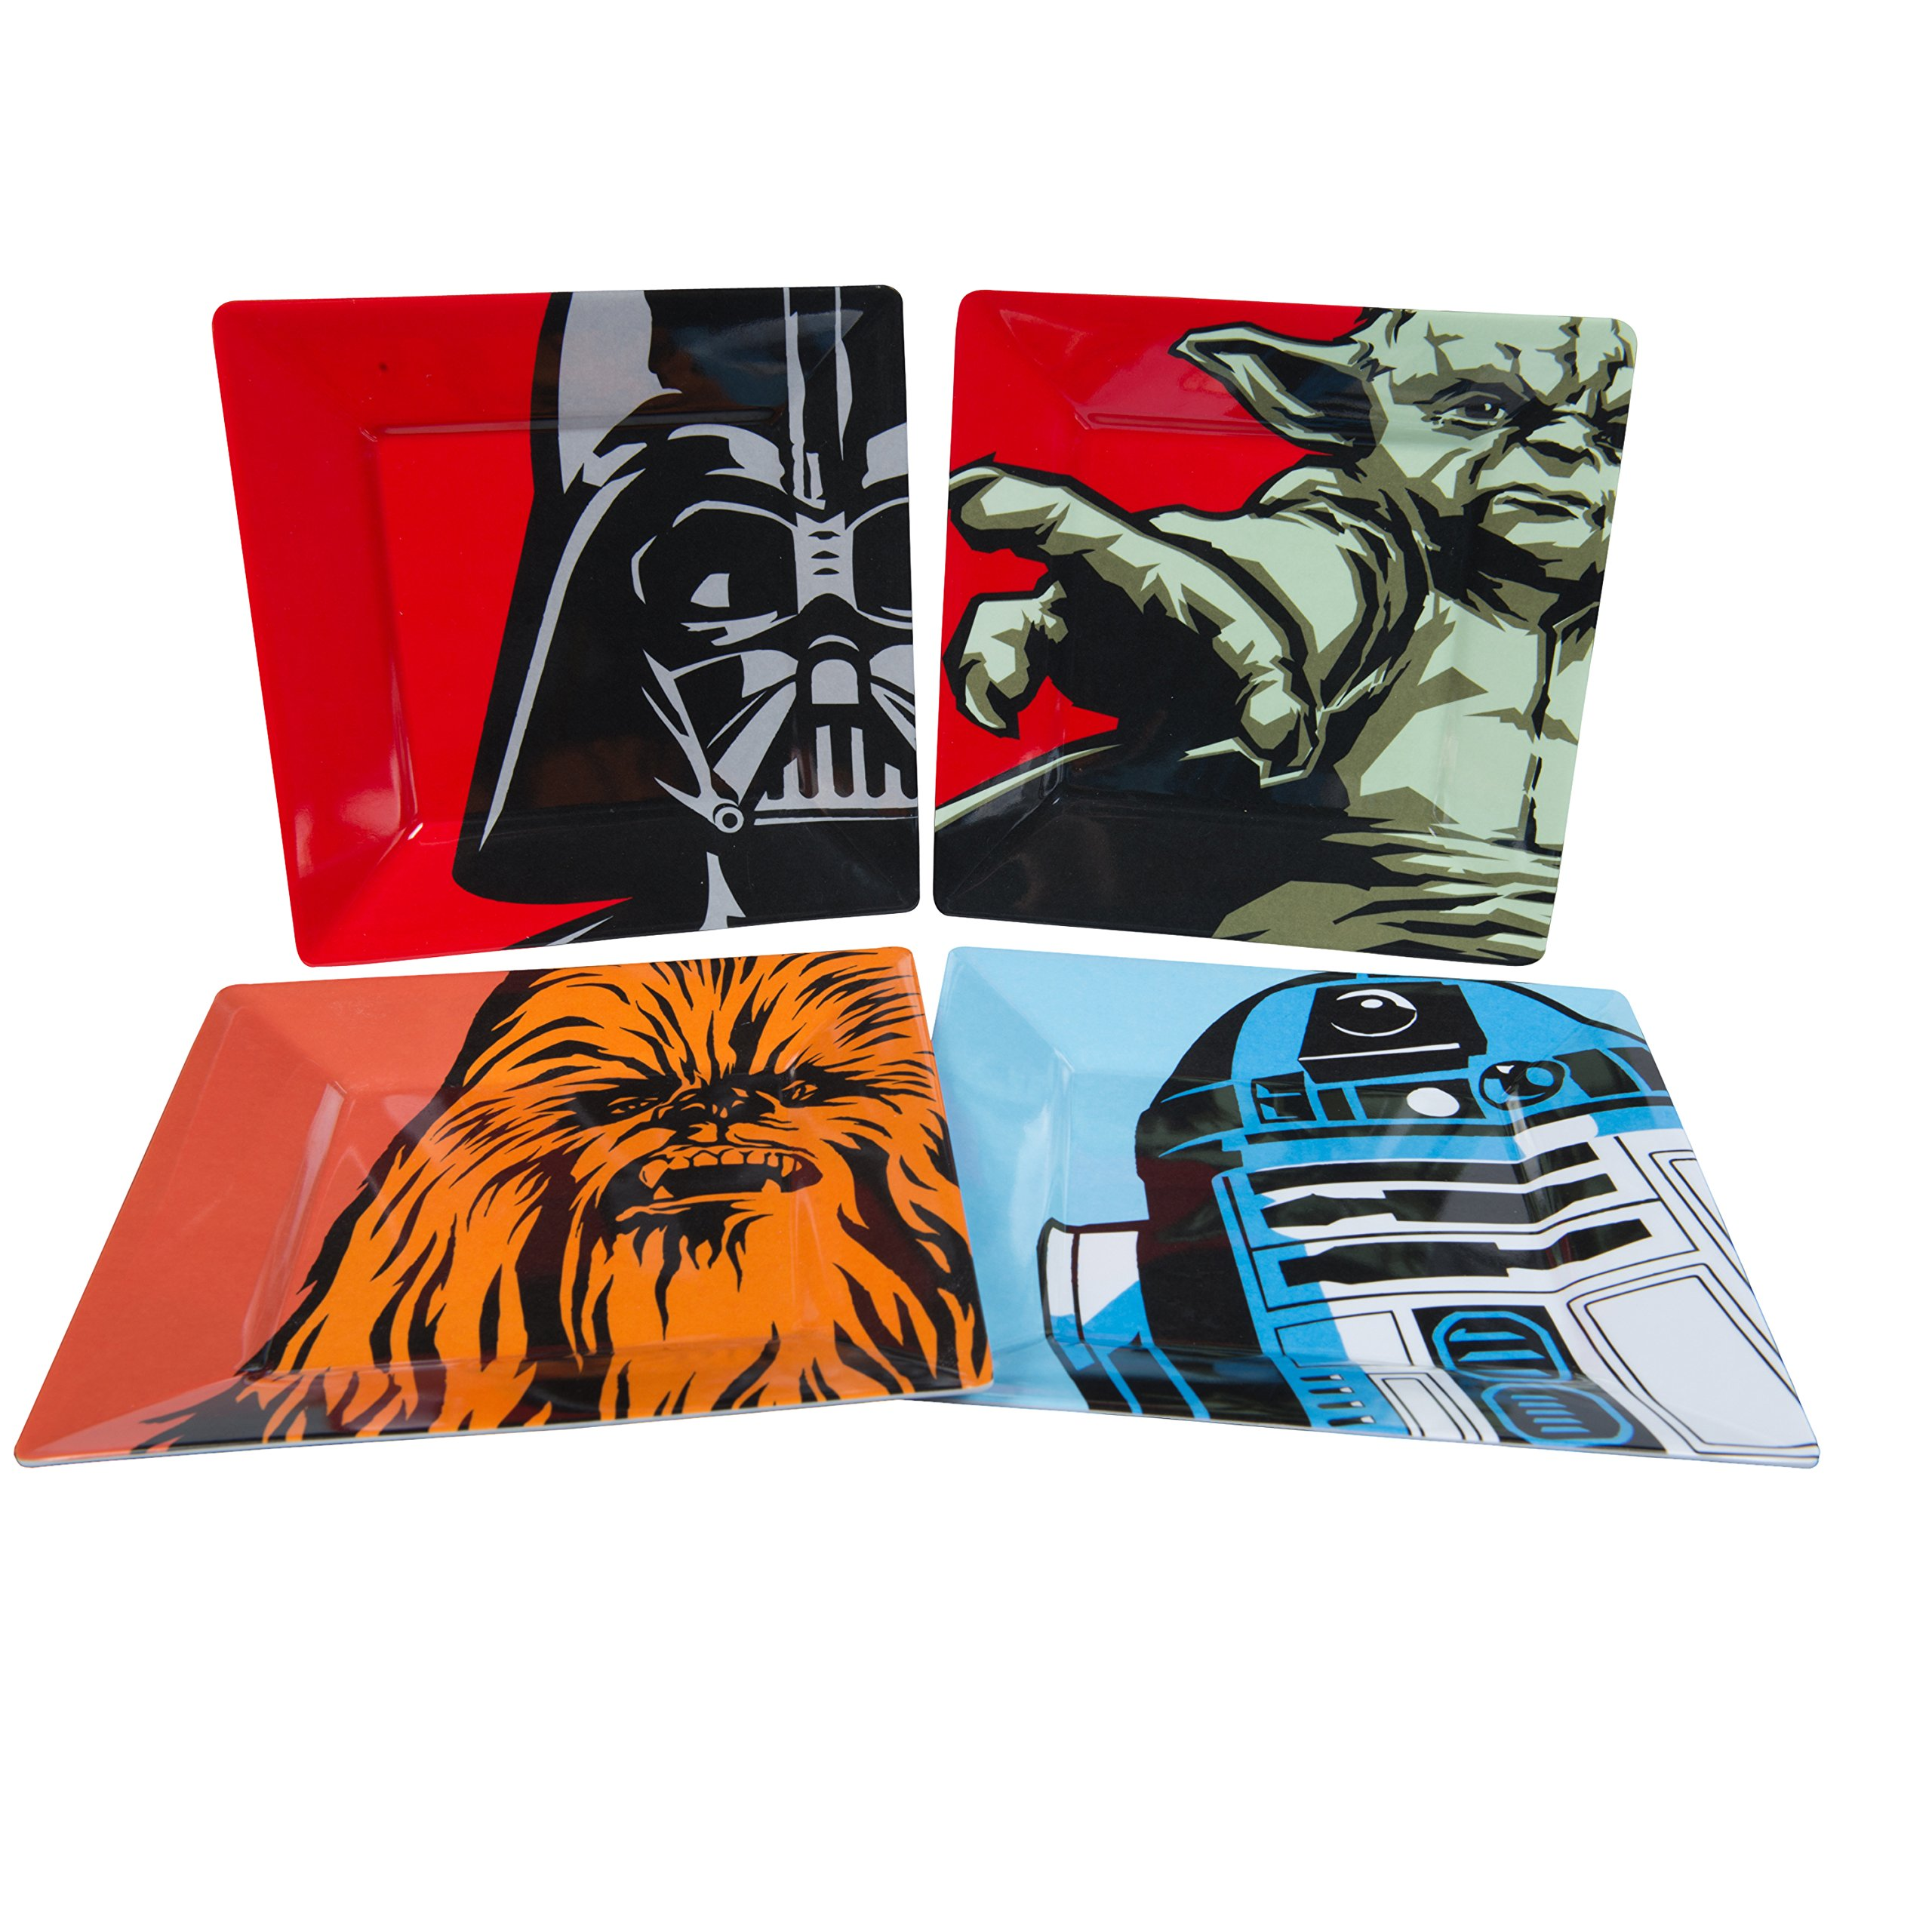 Star Wars Plate Set - Dishwasher Safe - Features Yoda, Darth Vader, R2D2 and Chewbacca by Star Wars (Image #1)